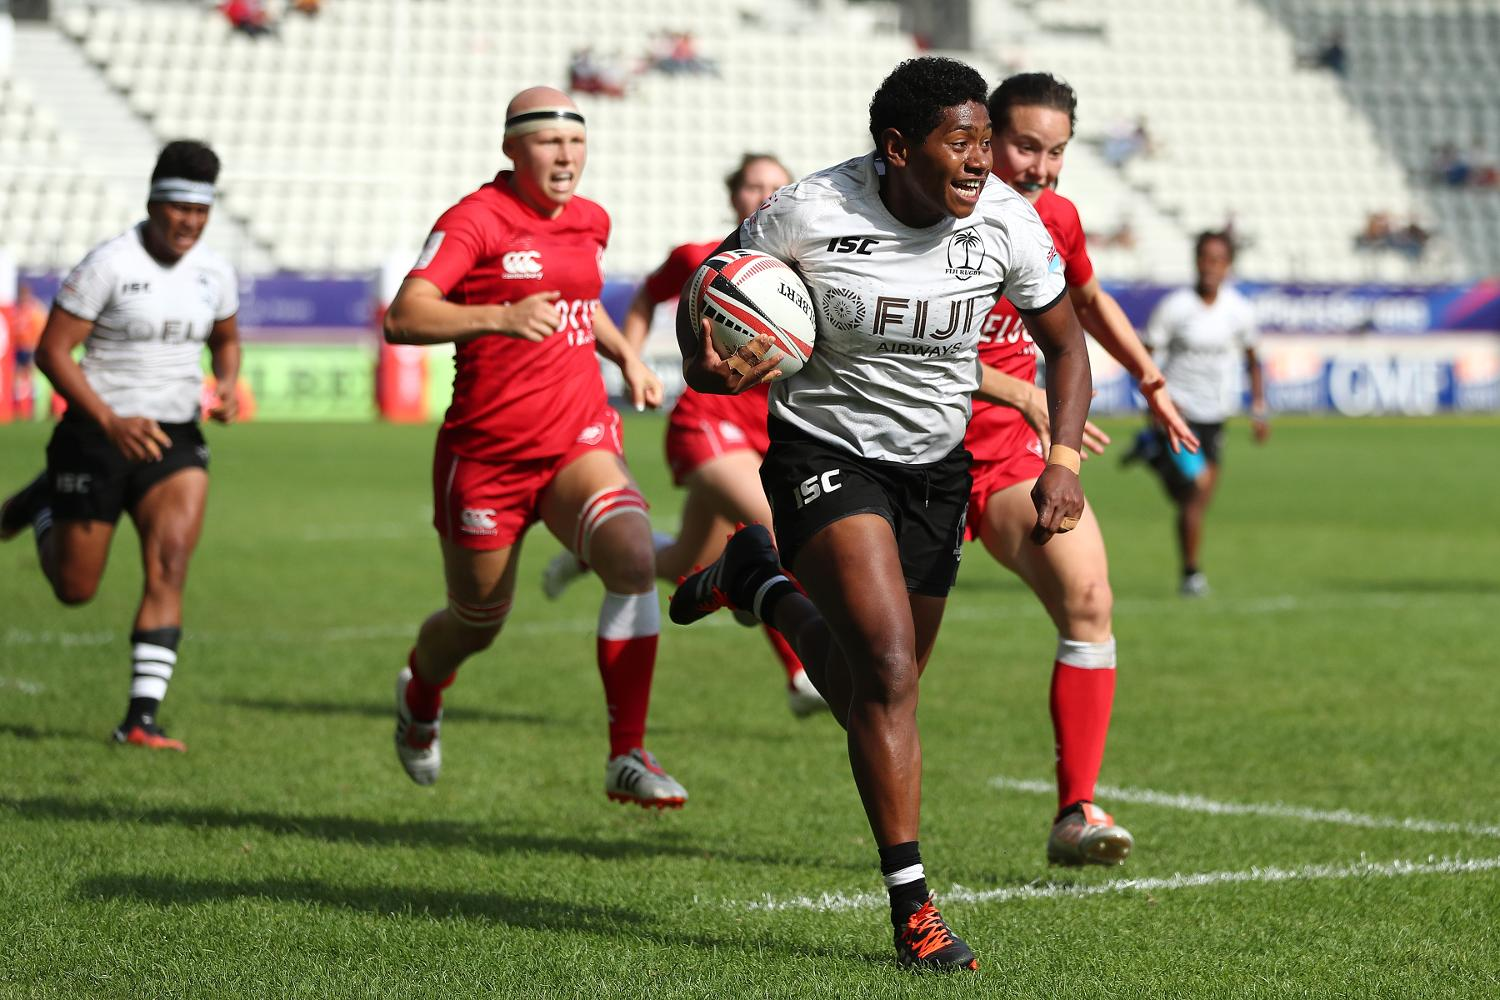 HSBC Paris Sevens 2018 - Women's Day One